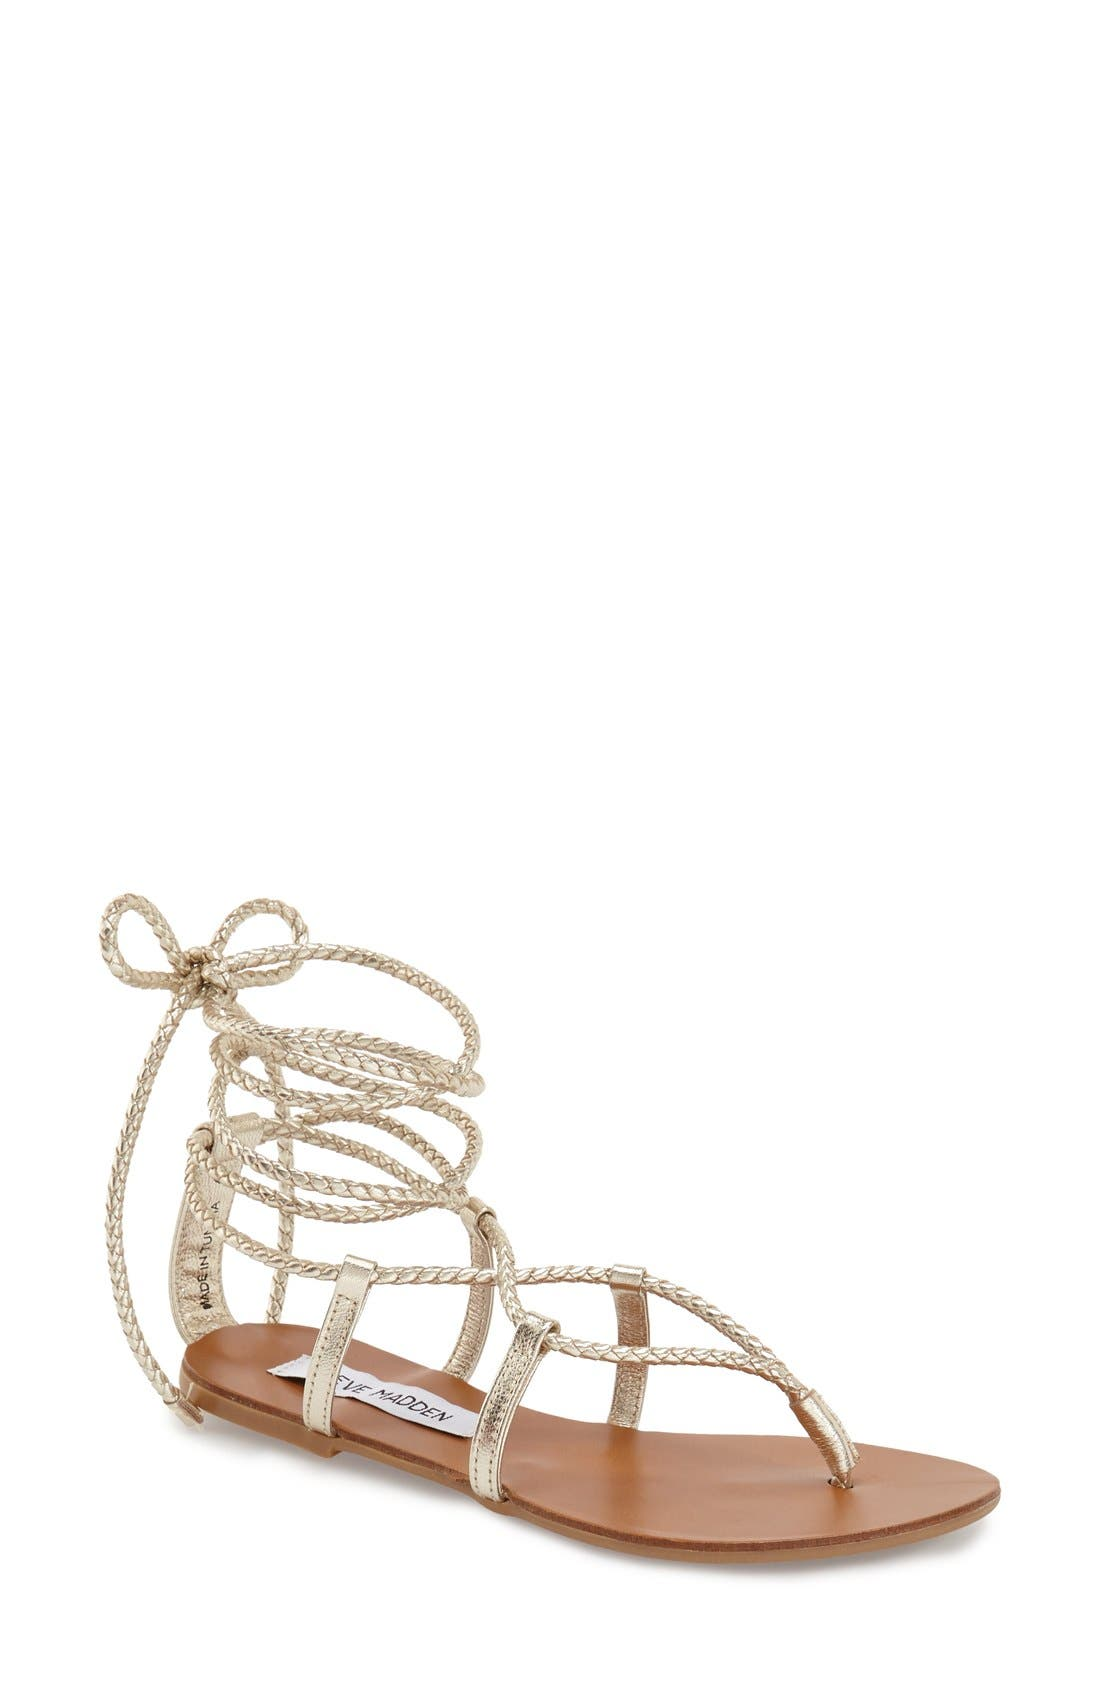 'Werkit' Gladiator Sandal,                             Main thumbnail 1, color,                             Gold Multi